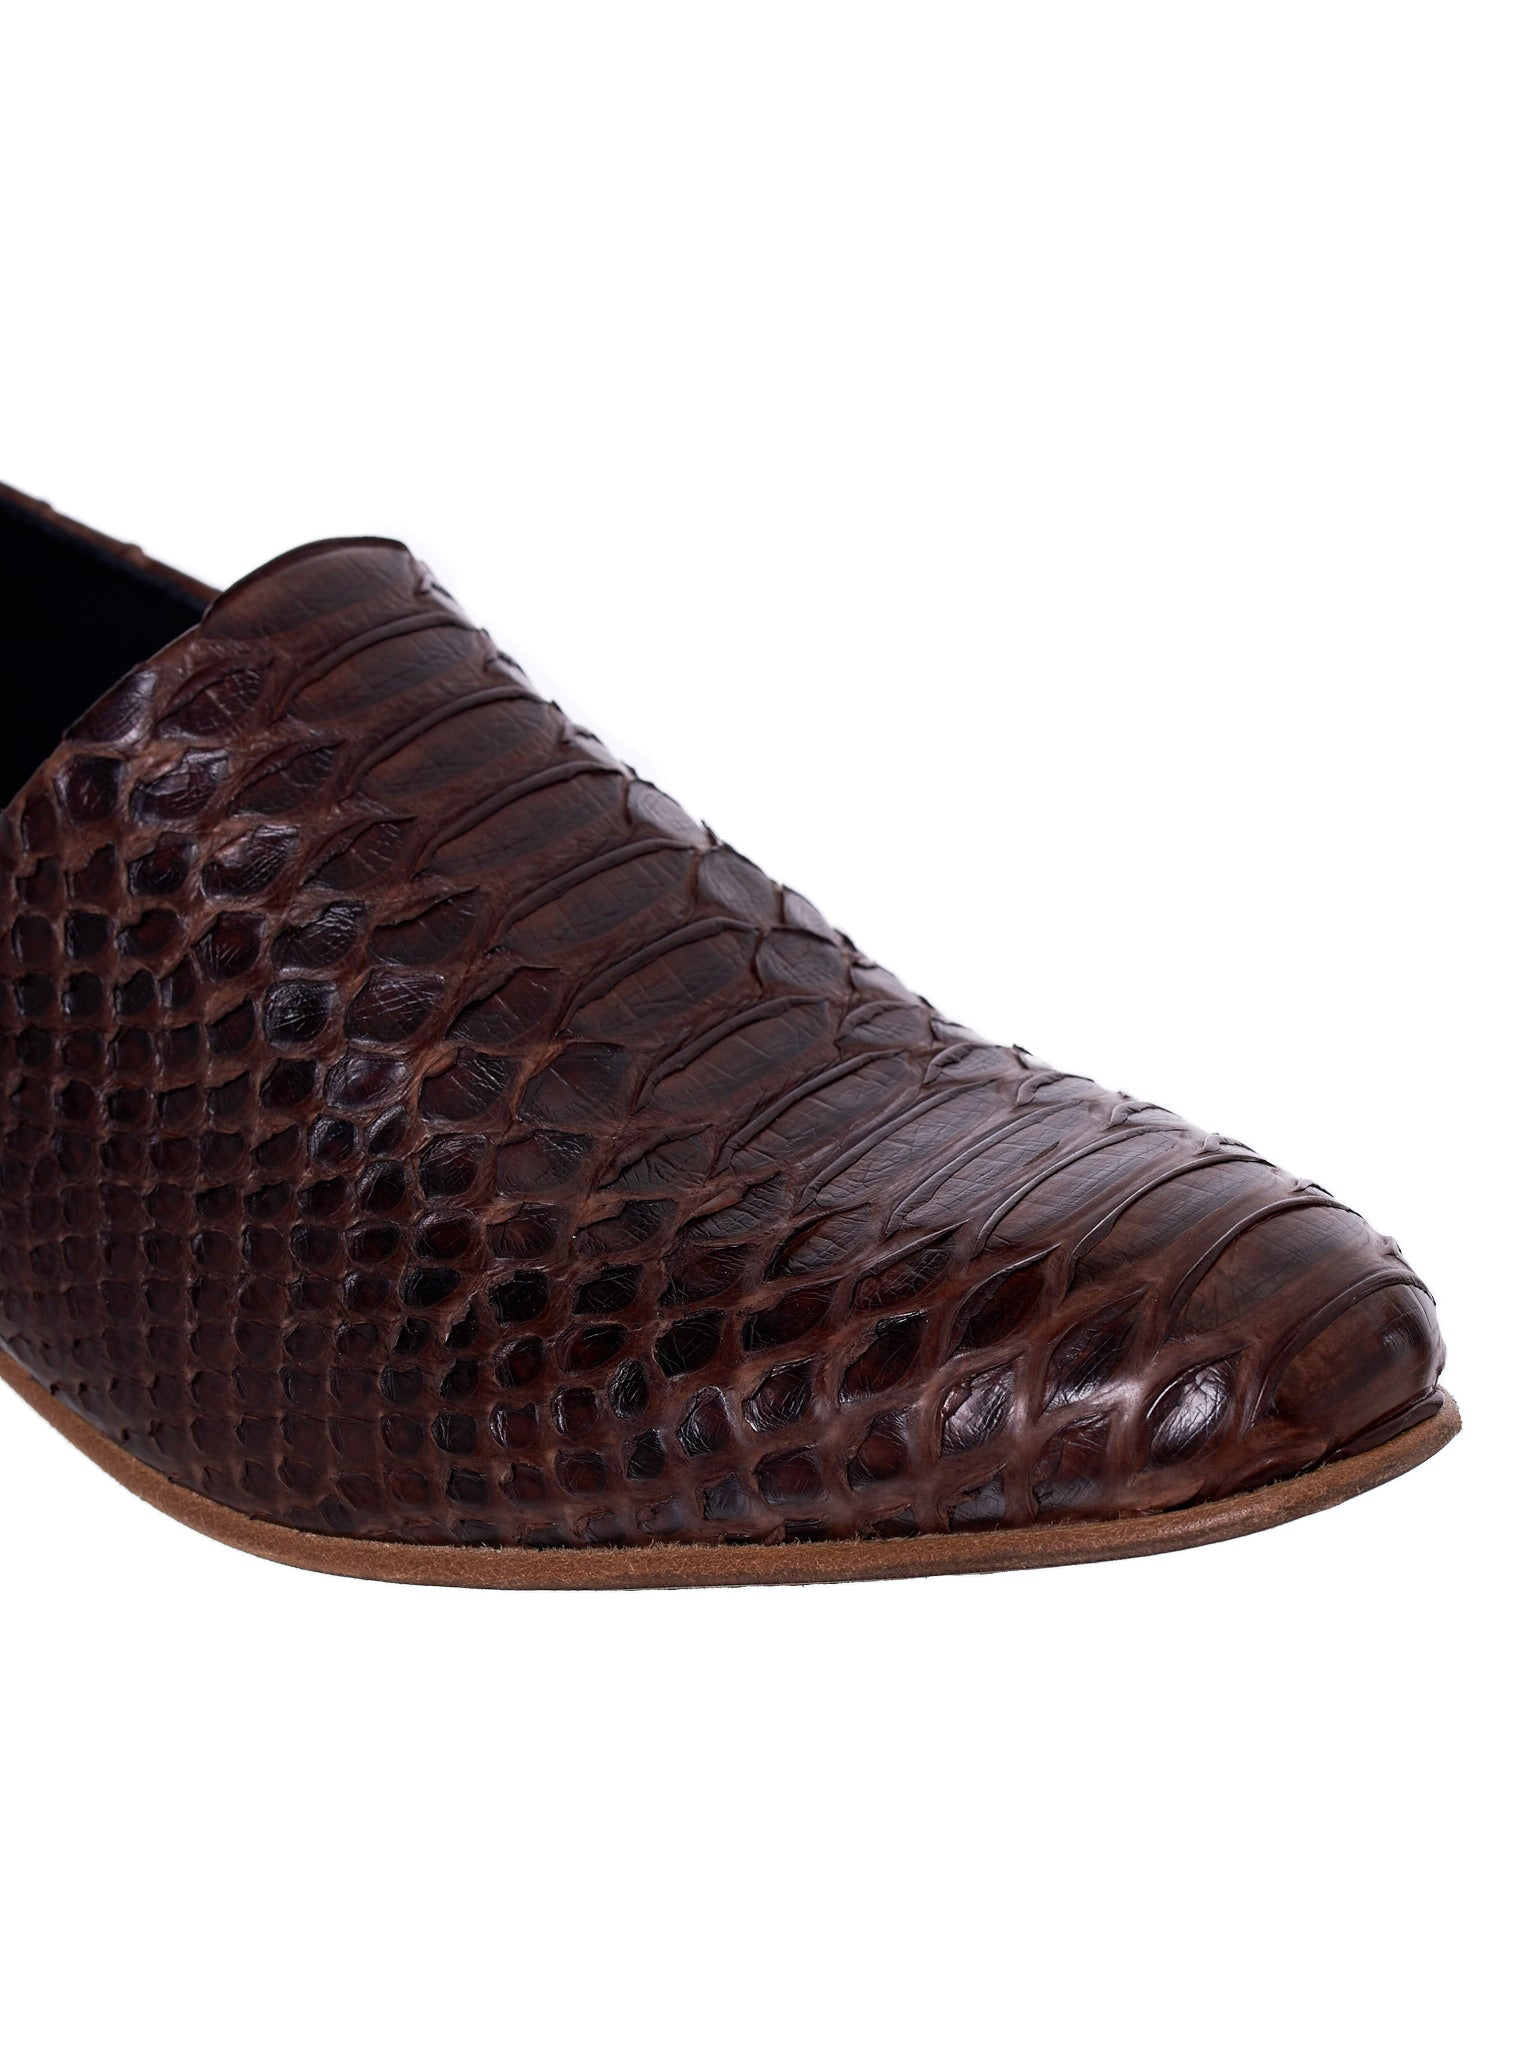 Haider Ackermann Loafer - Hlorenzo Detail 3